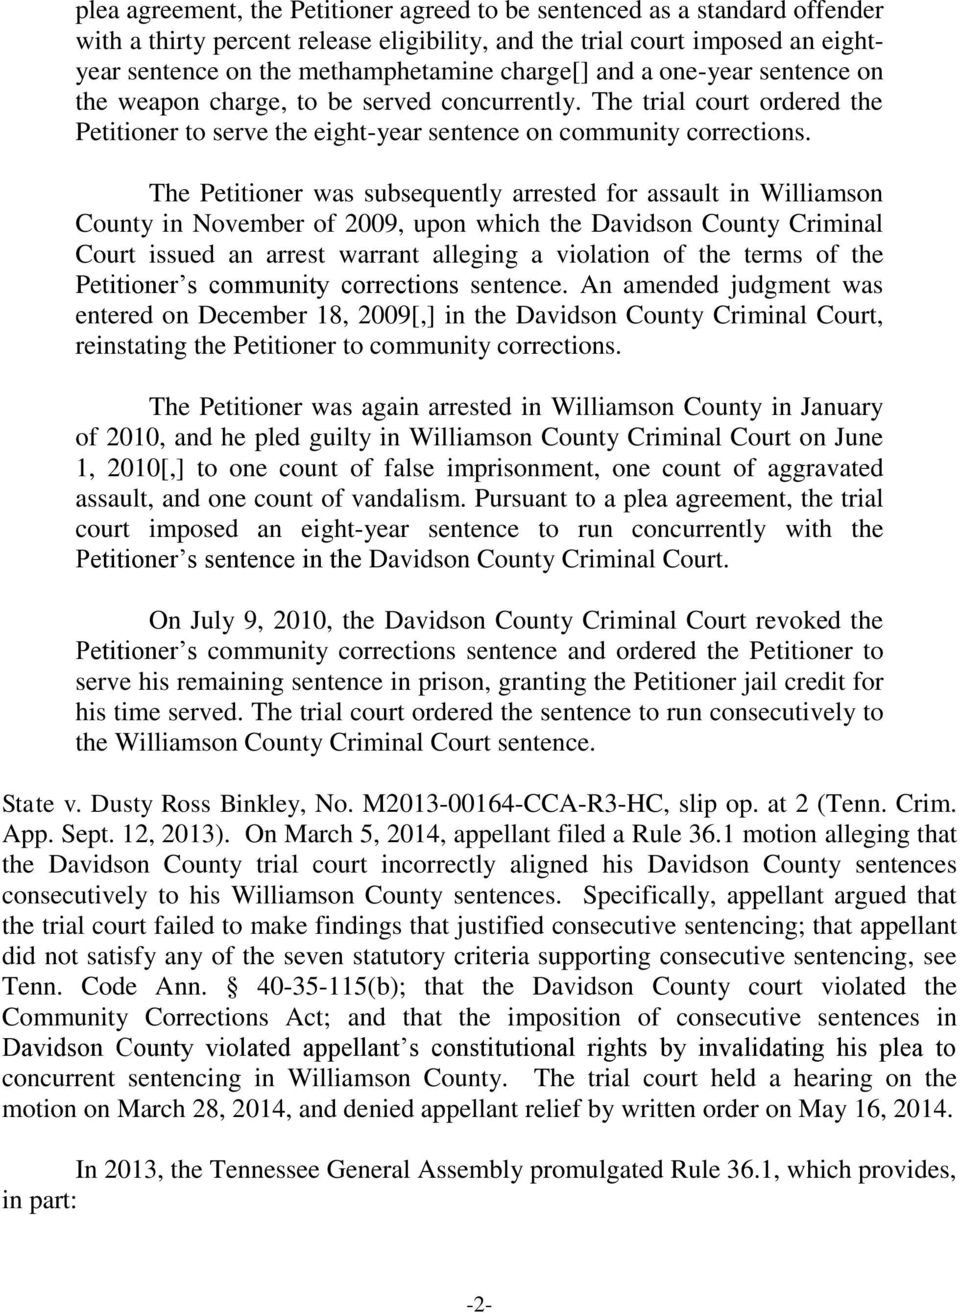 The Petitioner was subsequently arrested for assault in Williamson County in November of 2009, upon which the Davidson County Criminal Court issued an arrest warrant alleging a violation of the terms